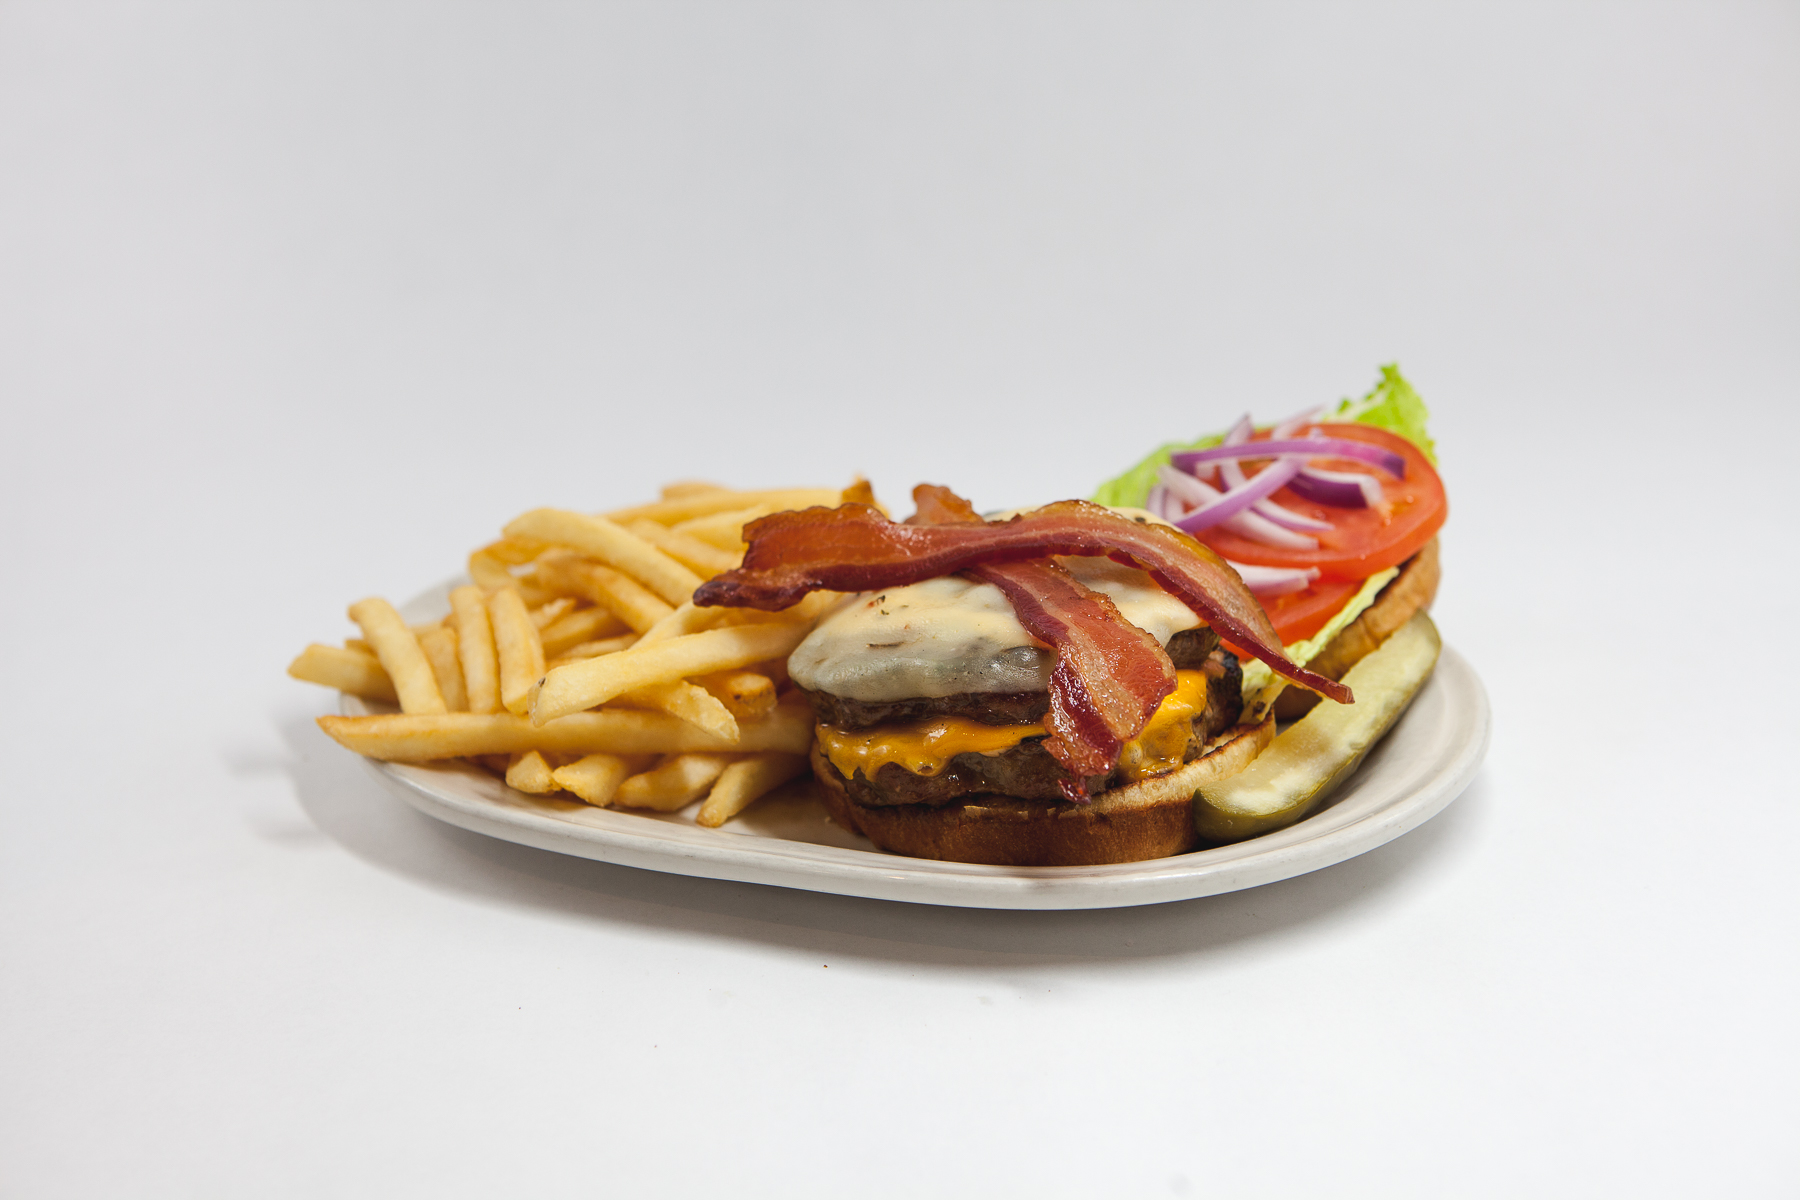 Food Photography for Tula's Northwoods Cafe - California Burger